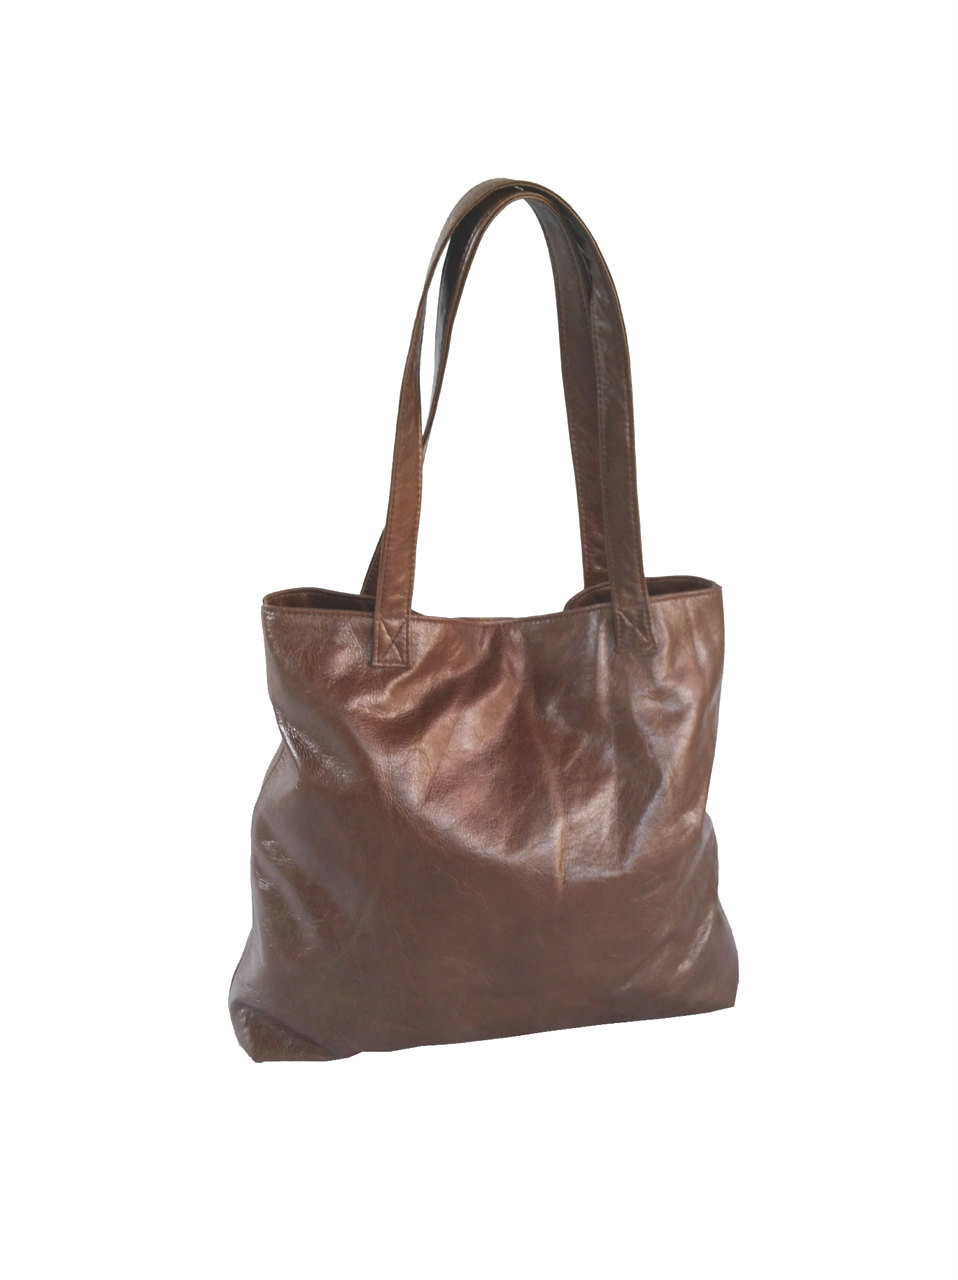 Brown Leather Tote Purse Bag - Casual Shoulder Tote - Women s Purses -  Lightweight Handmade Totes yosy - Fgalaze Genuine Leather Bags   Accessories 234e7bba84e54